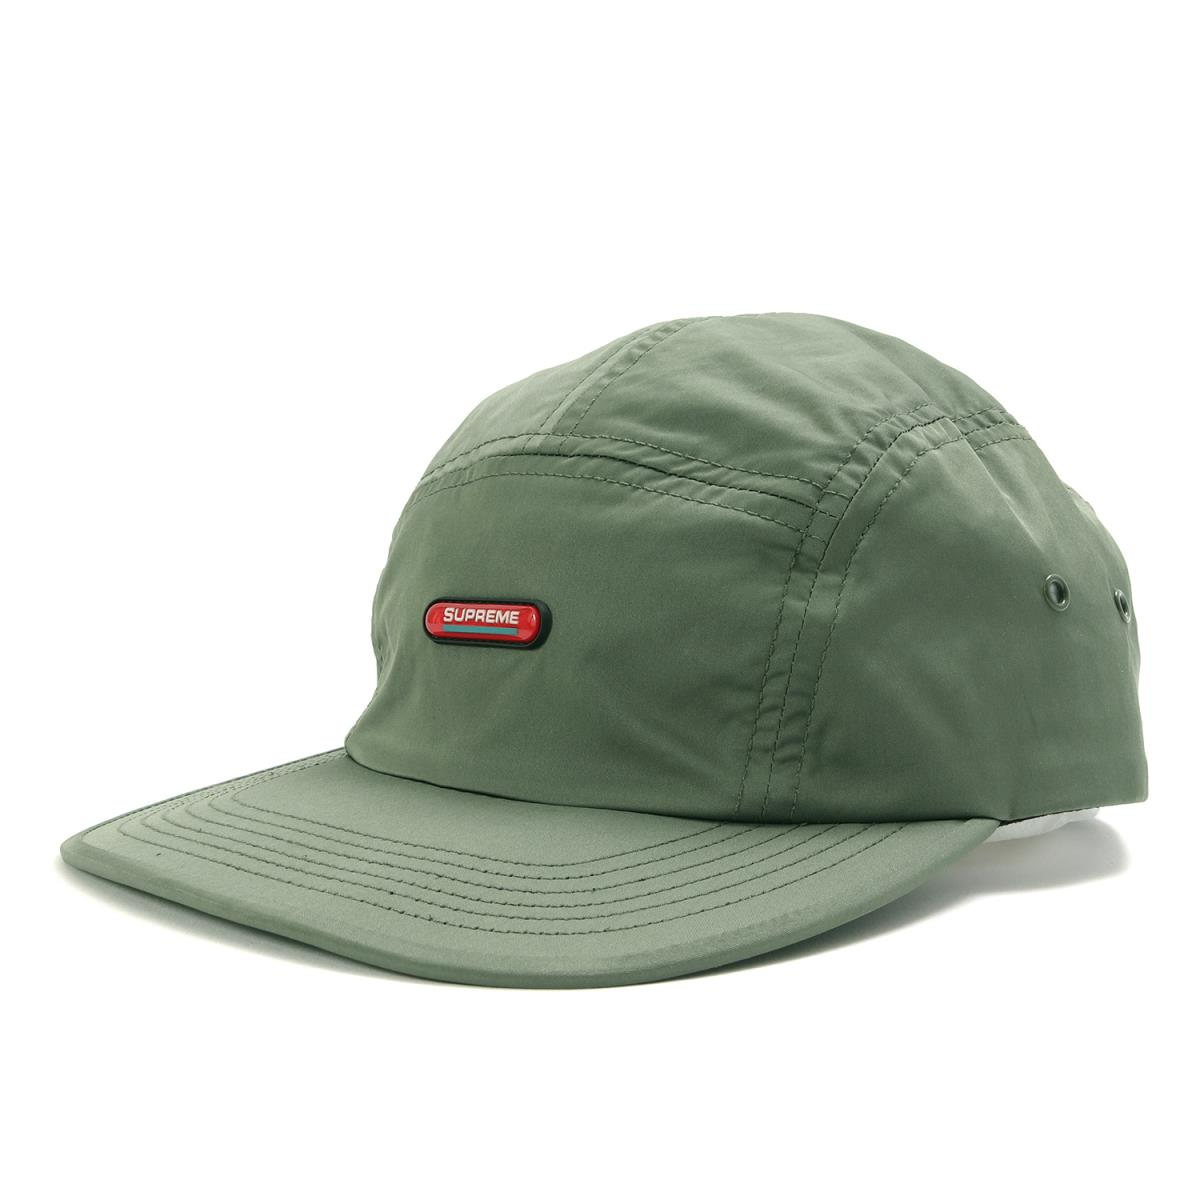 Supreme (シュプリーム) 18A/W クリア—パッチキャンプキャップ(Clear Patch Camp Cap) オリーブ 【メンズ】【美品】【K2204】【中古】【あす楽☆対応可】